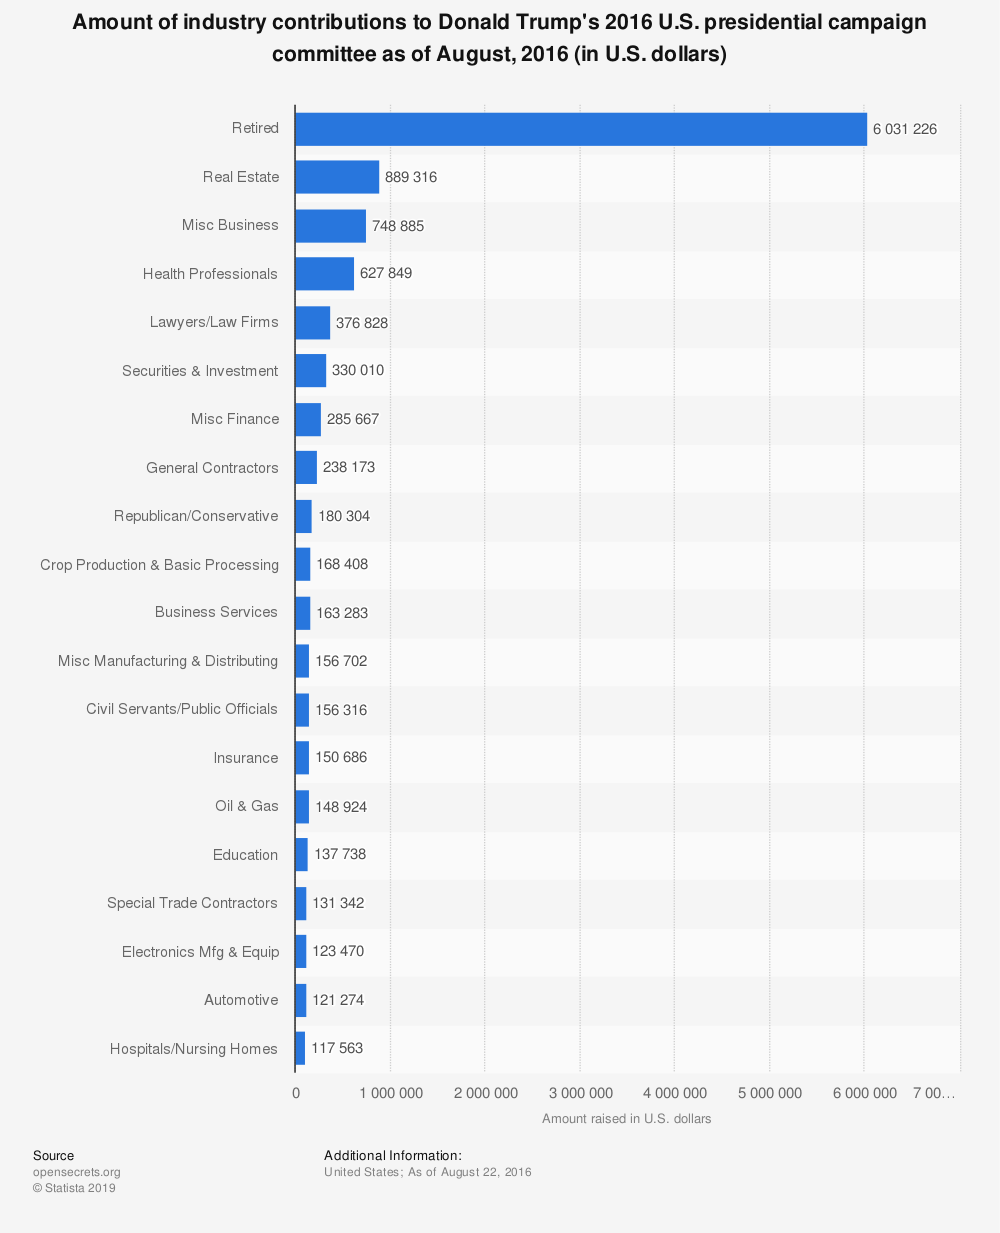 Statistic: Amount of industry contributions to Donald Trump's 2016 U.S. presidential campaign committee as of August, 2016 (in U.S. dollars) | Statista